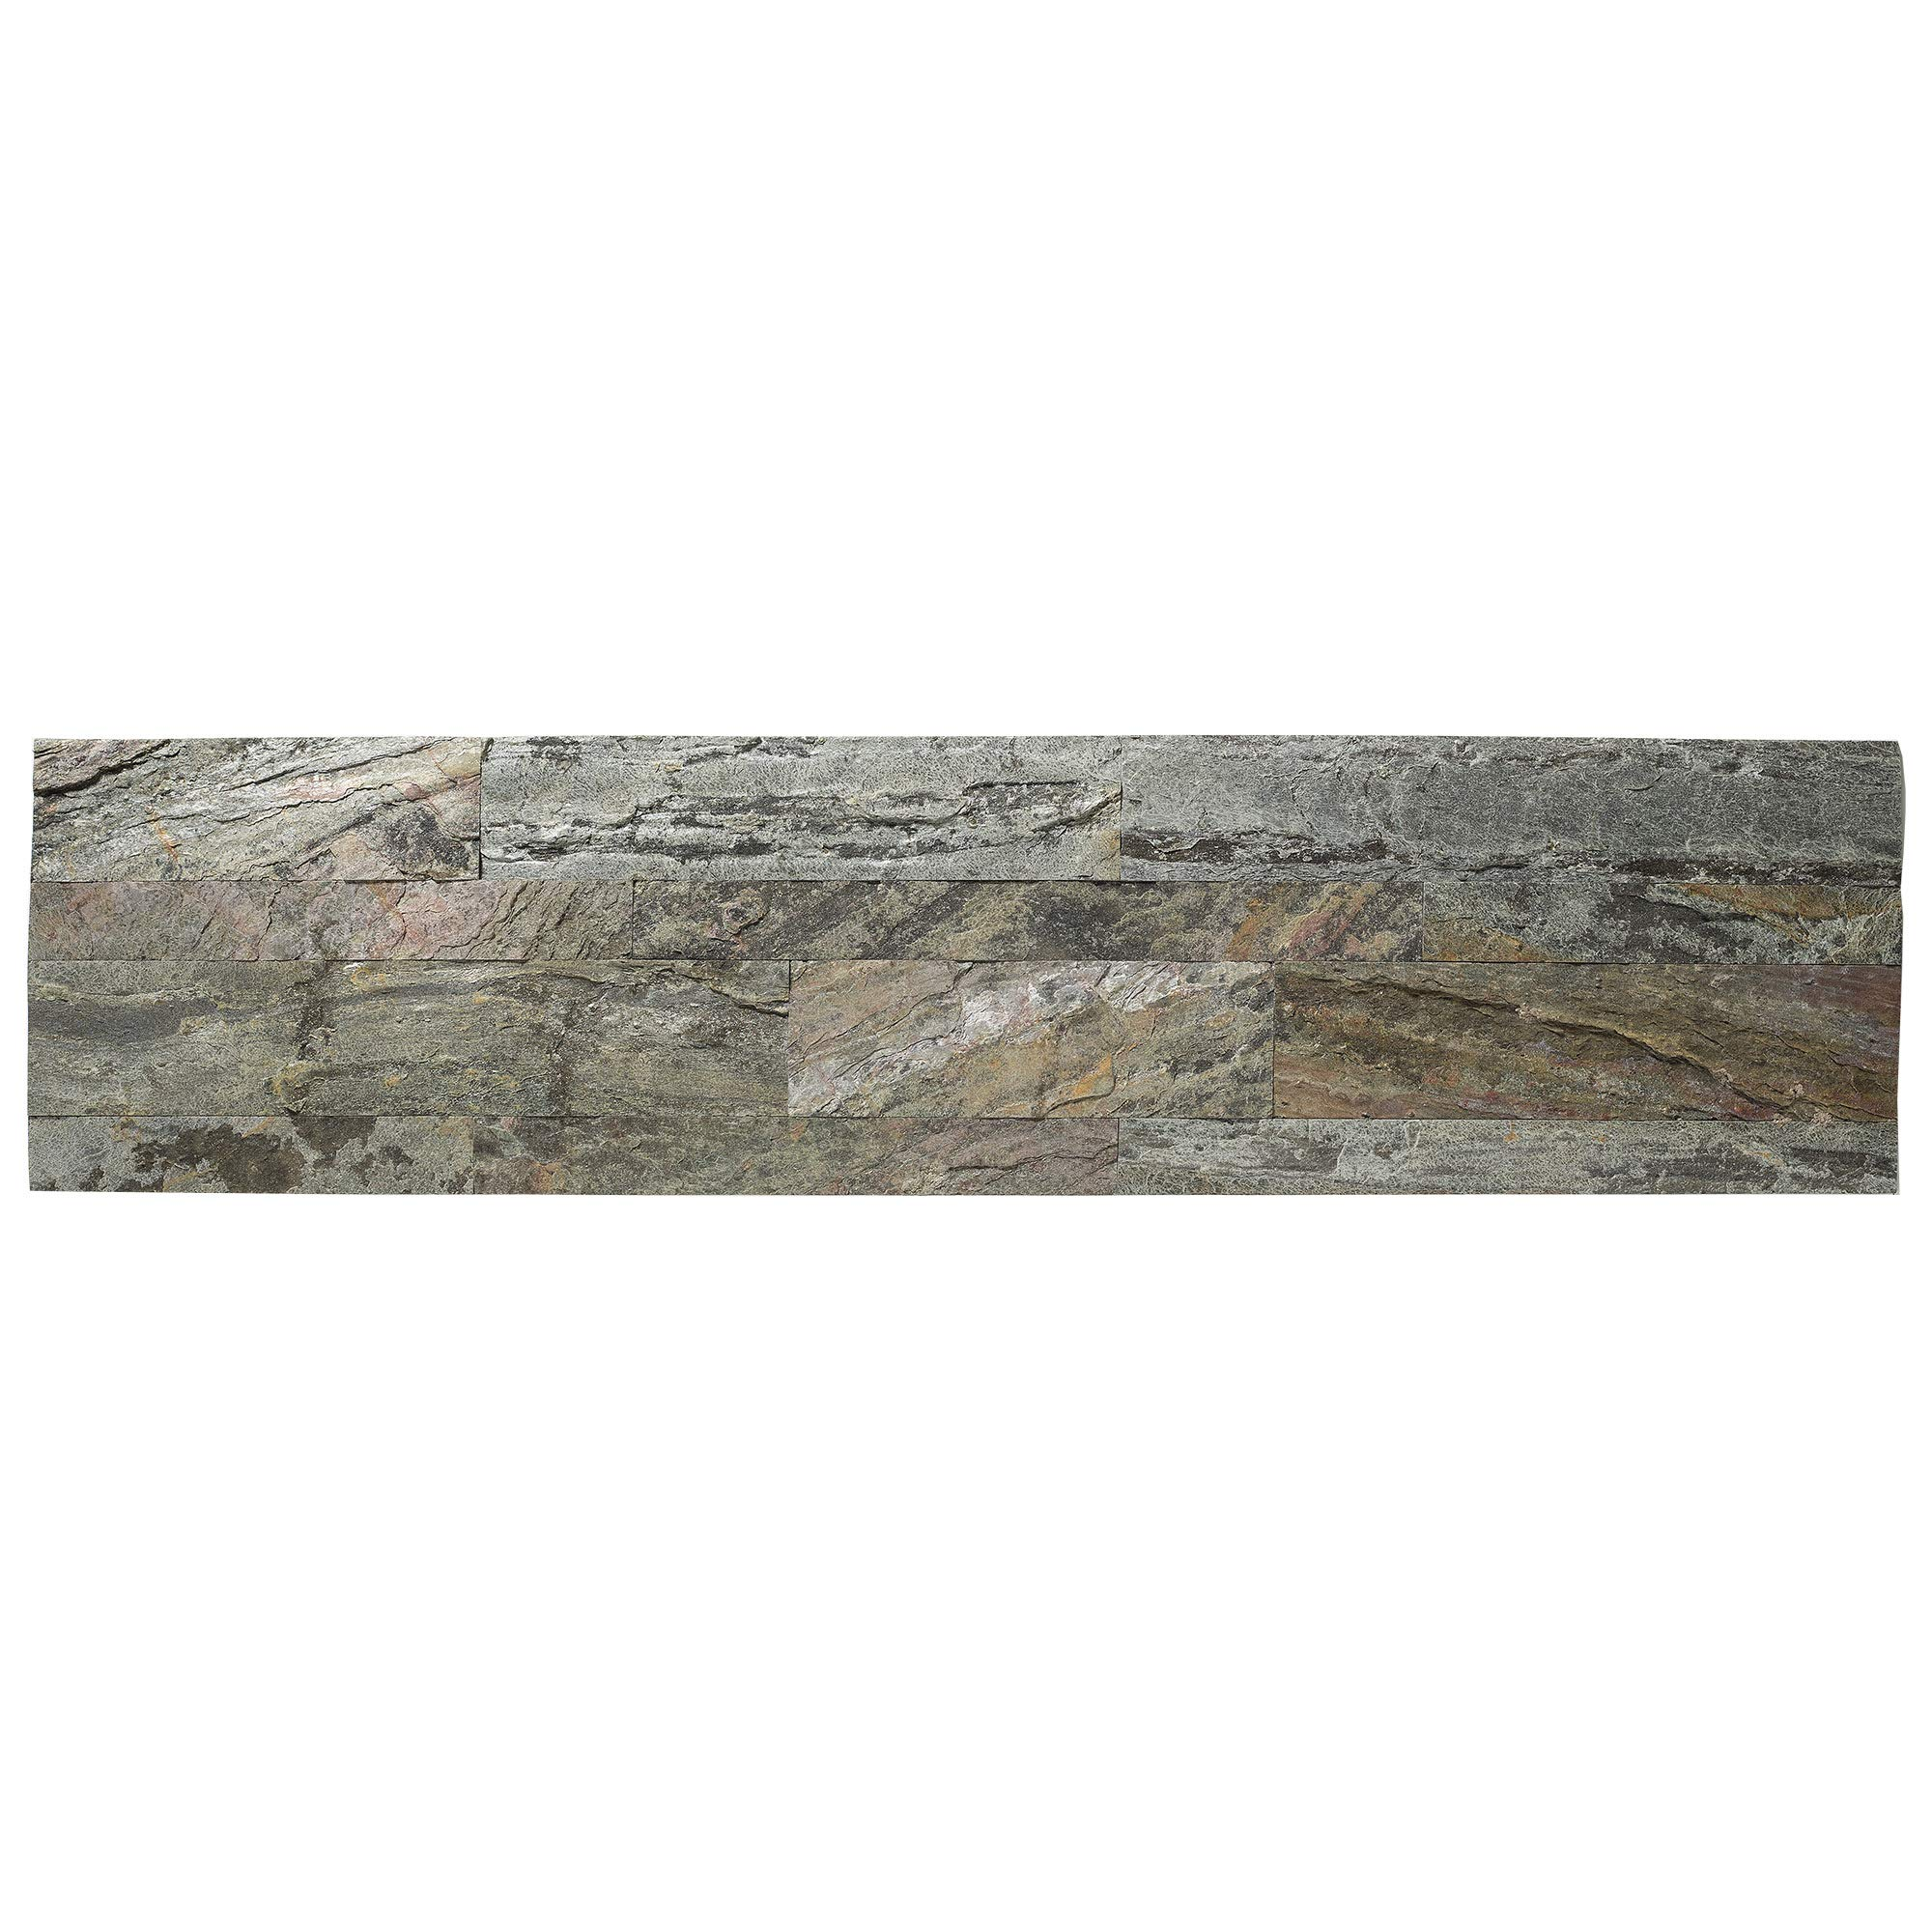 Aspect Peel and Stick Stone Overlay Kitchen Backsplash - Weathered Quartz (5.9'' x 23.6'' x 1/8'' Panel - Approx. 1 sq ft) - Easy DIY Tile Backsplash by Aspect